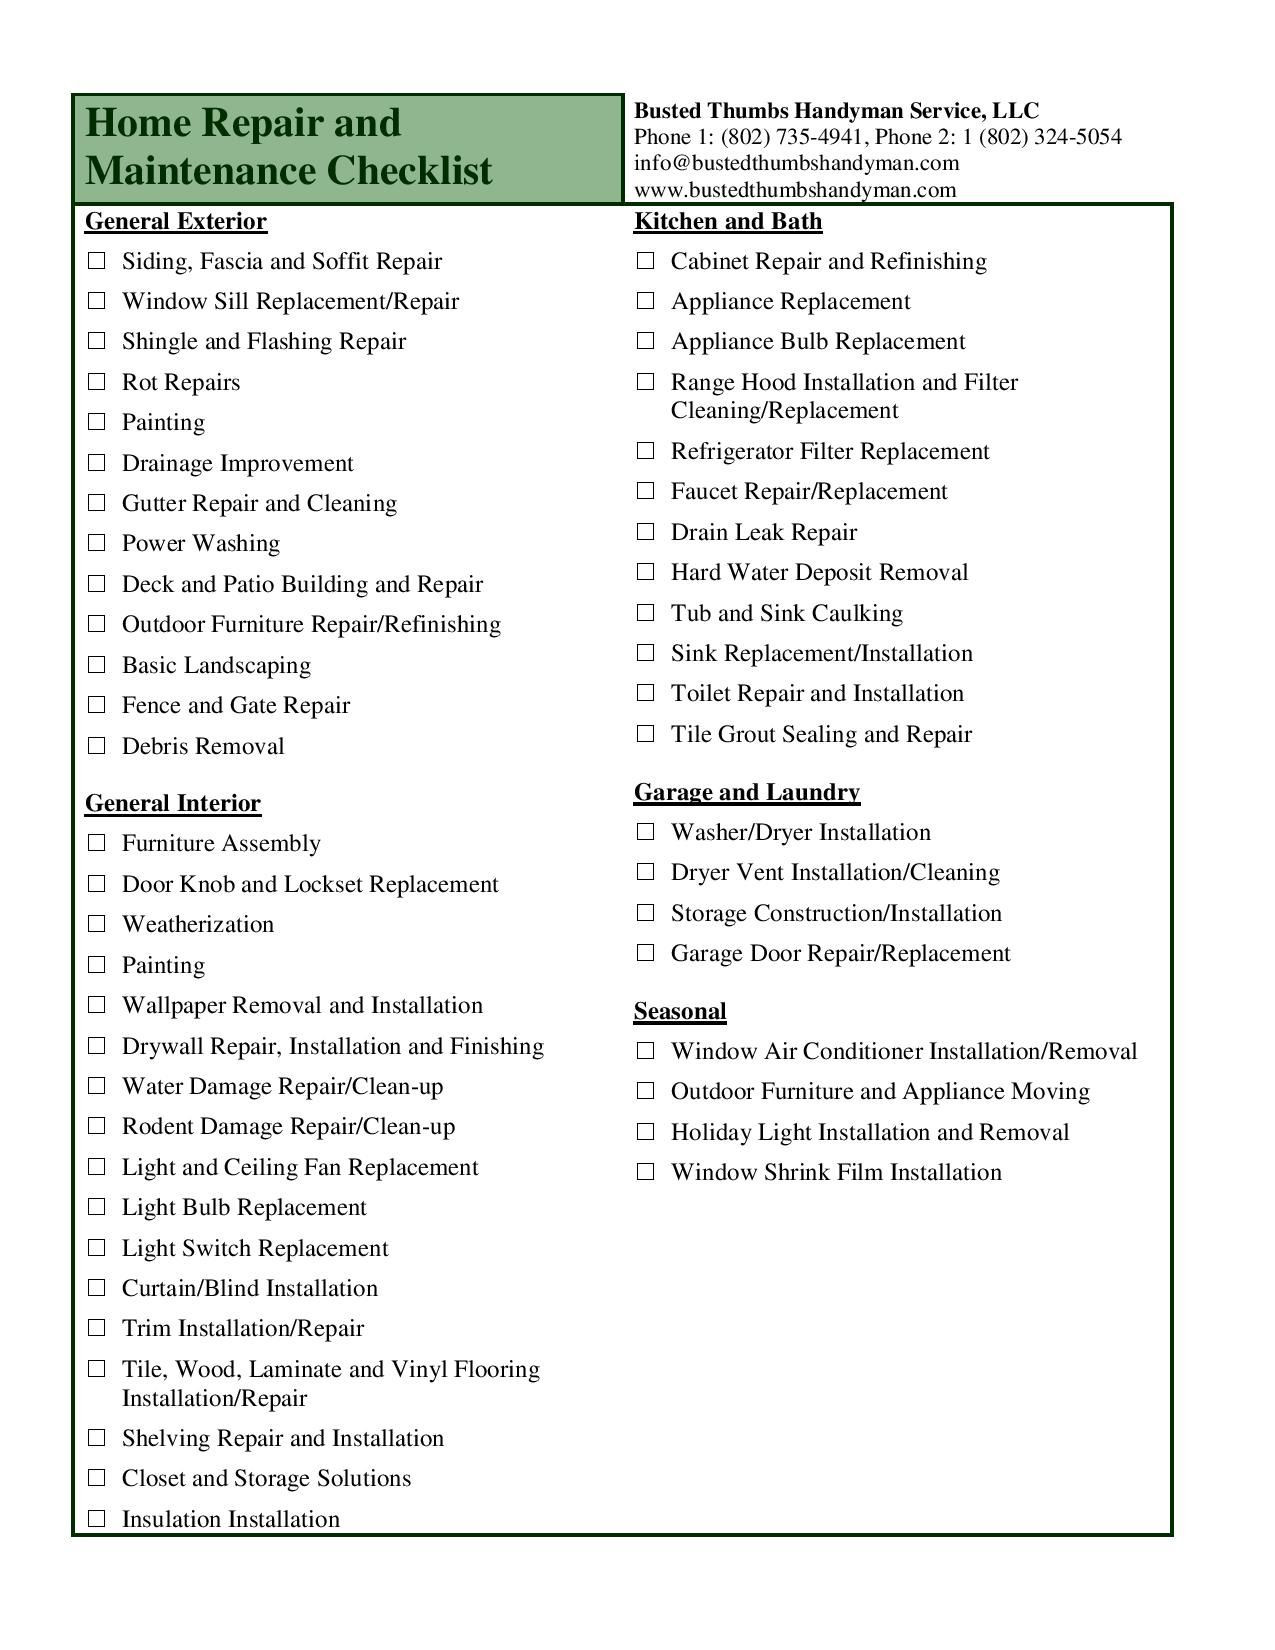 Bathroom Remodel Checklist Template